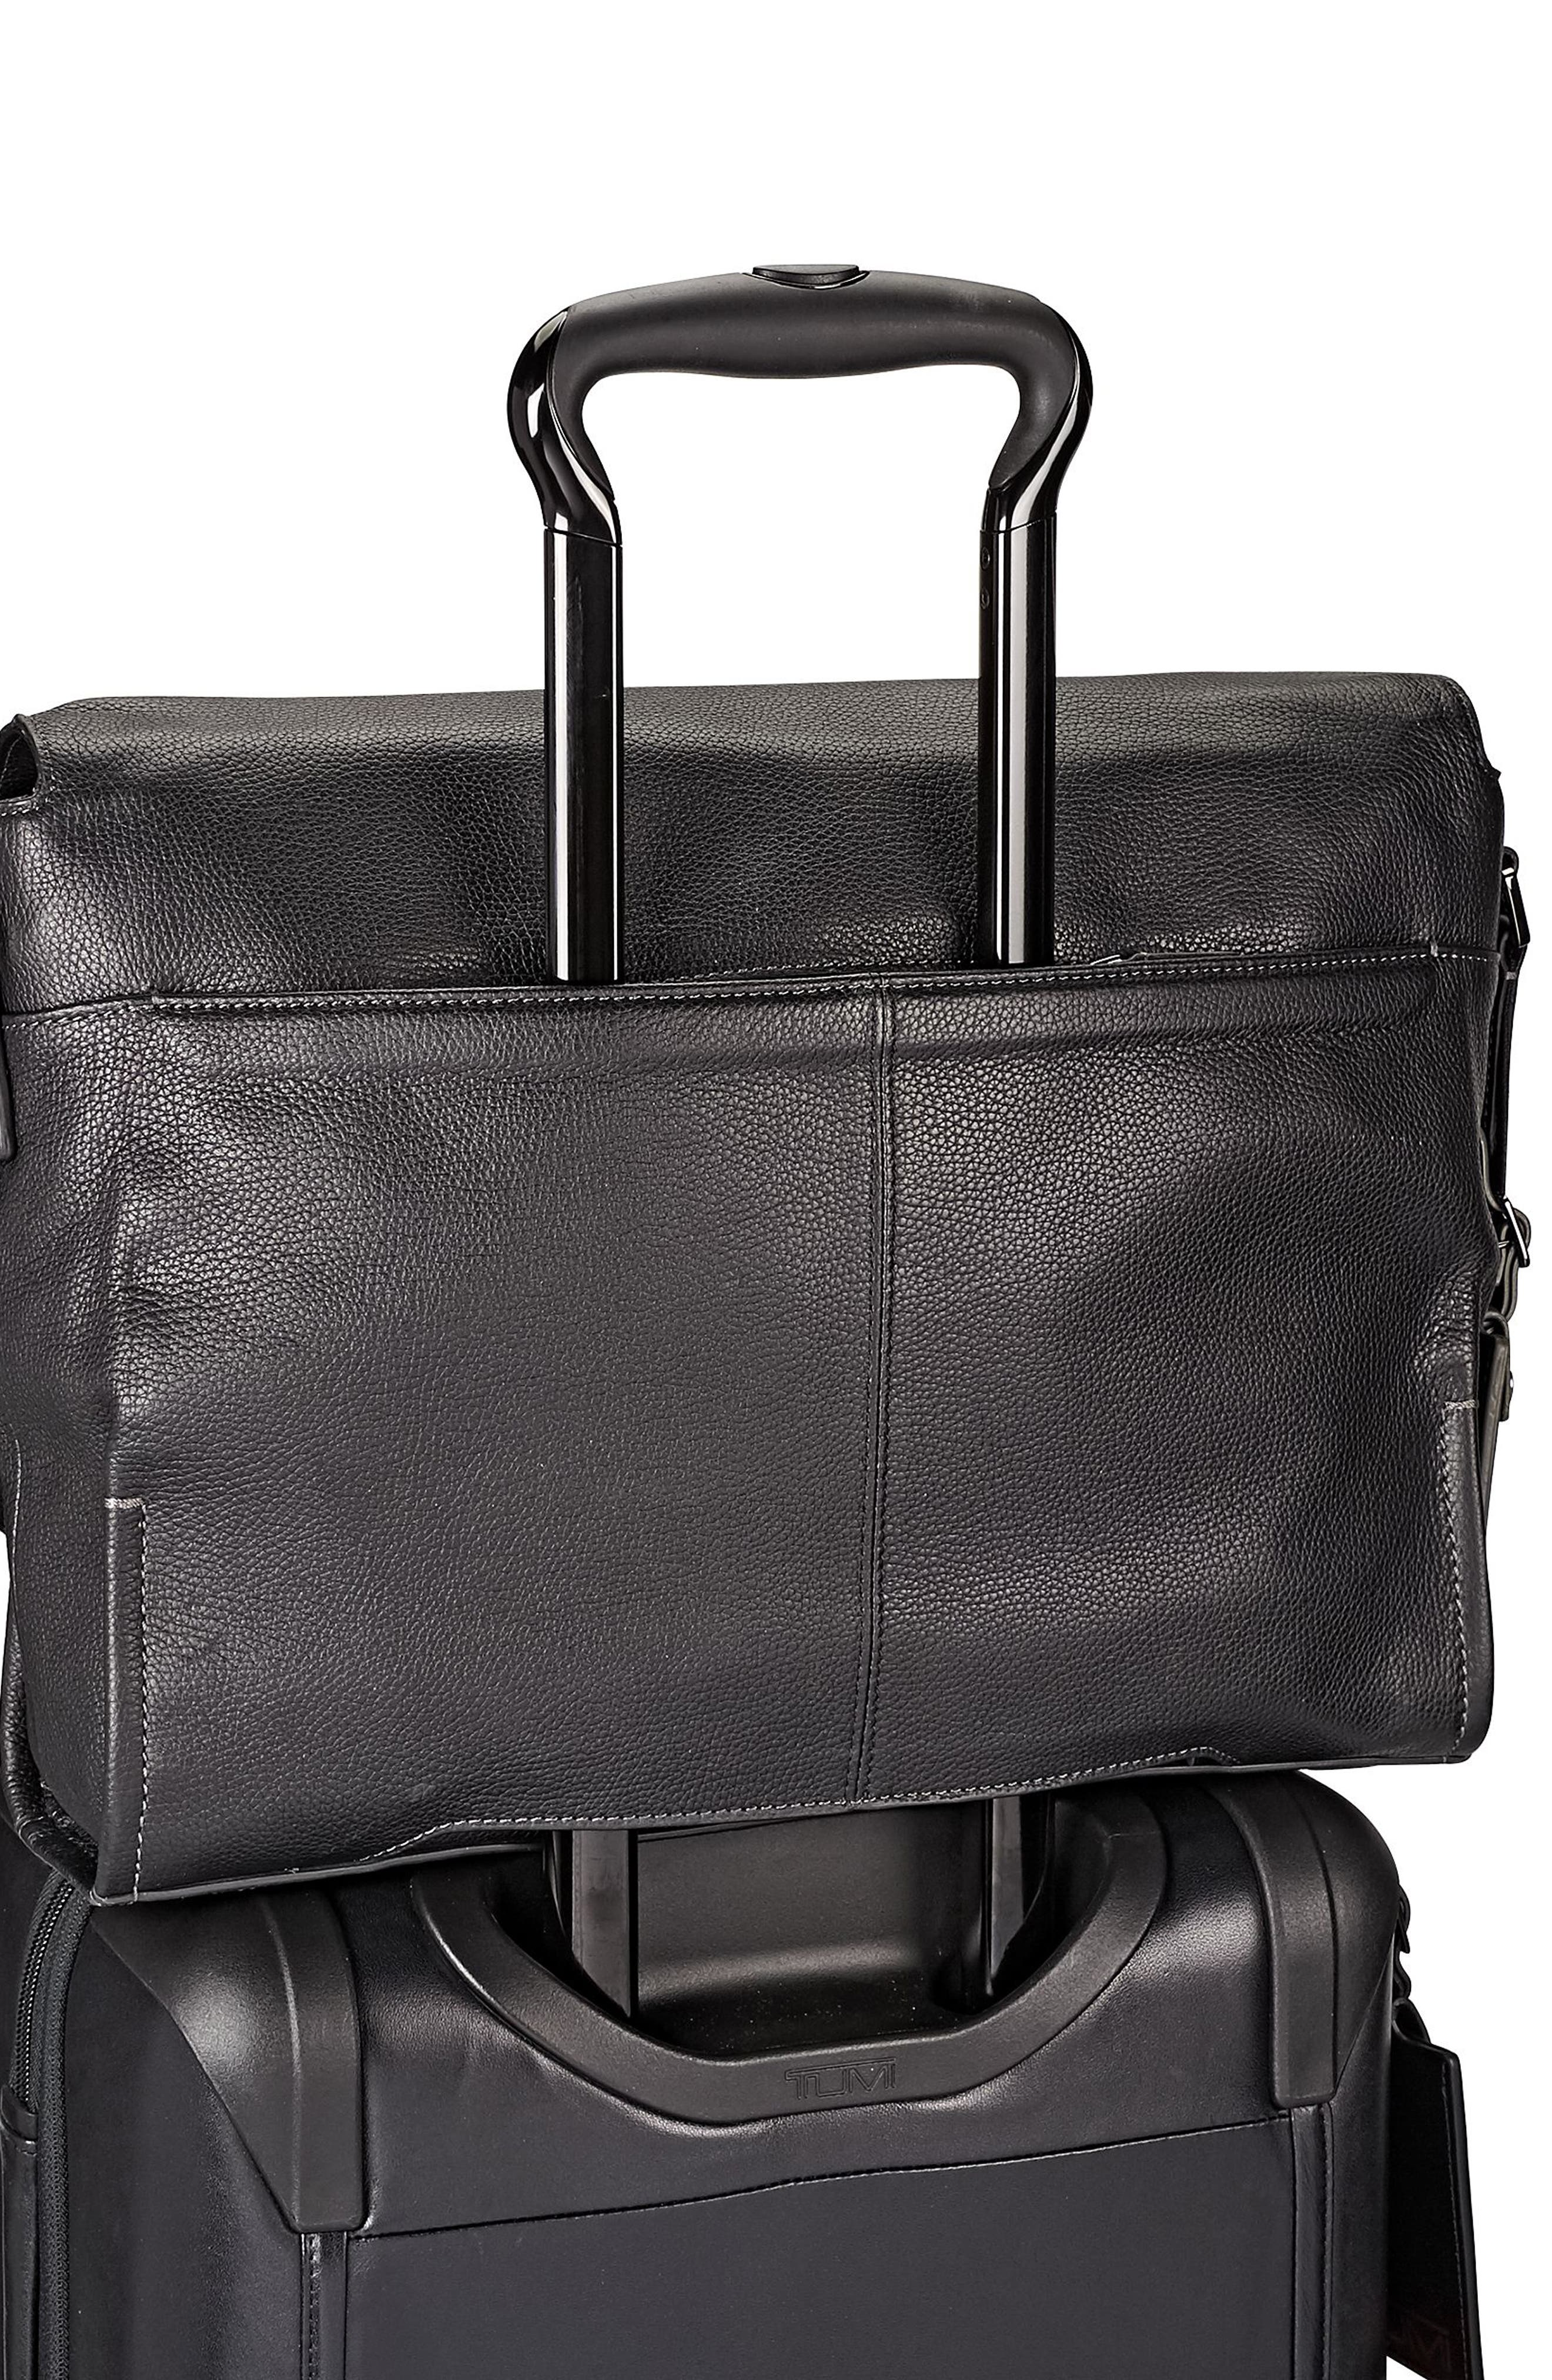 Harrison - Mathews Messenger Bag,                             Alternate thumbnail 6, color,                             Black